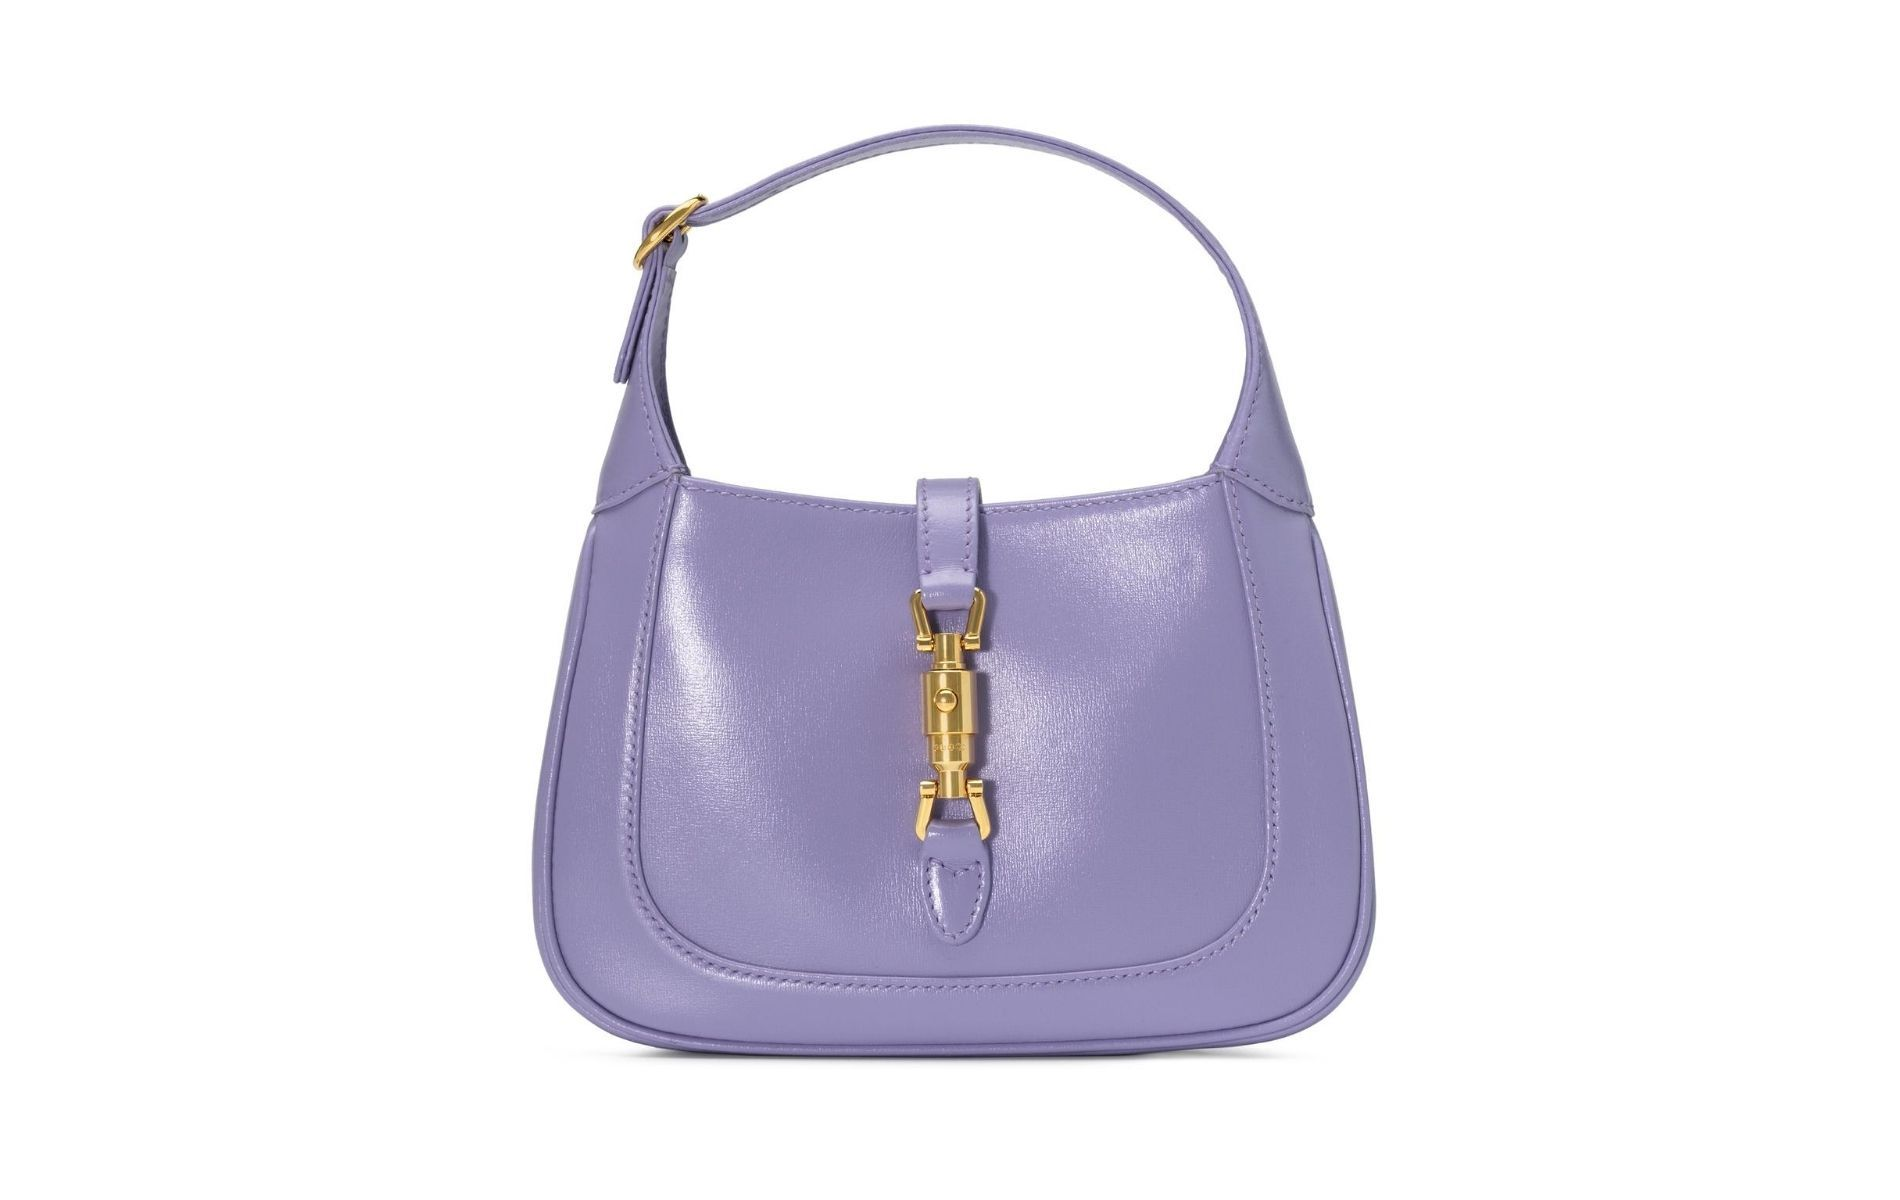 Jackie 1961 in lilac